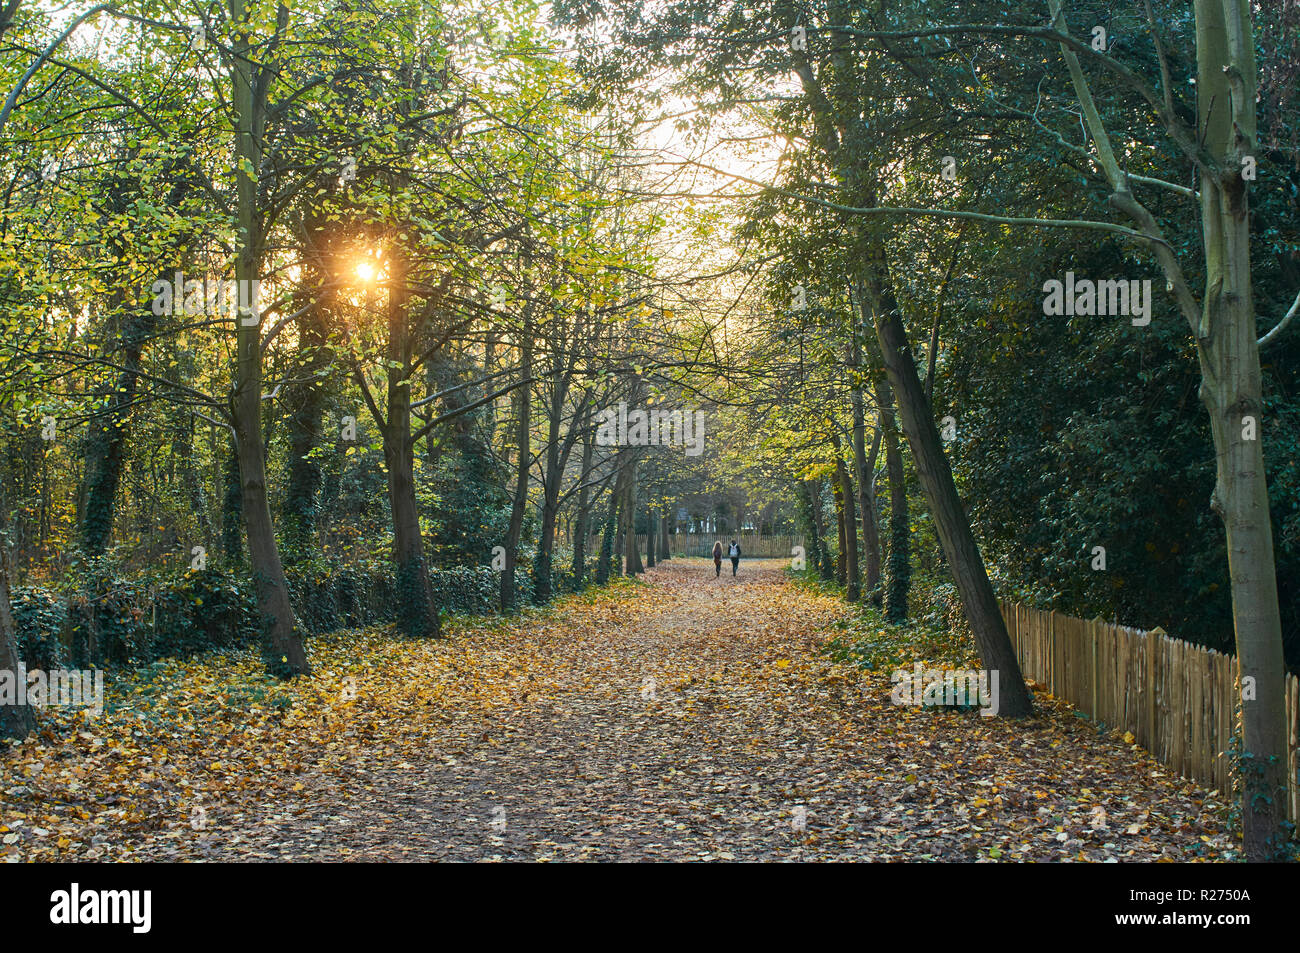 Path in Holland Park in the Royal Borough of Kensington & Chelsea, London UK, in November - Stock Image